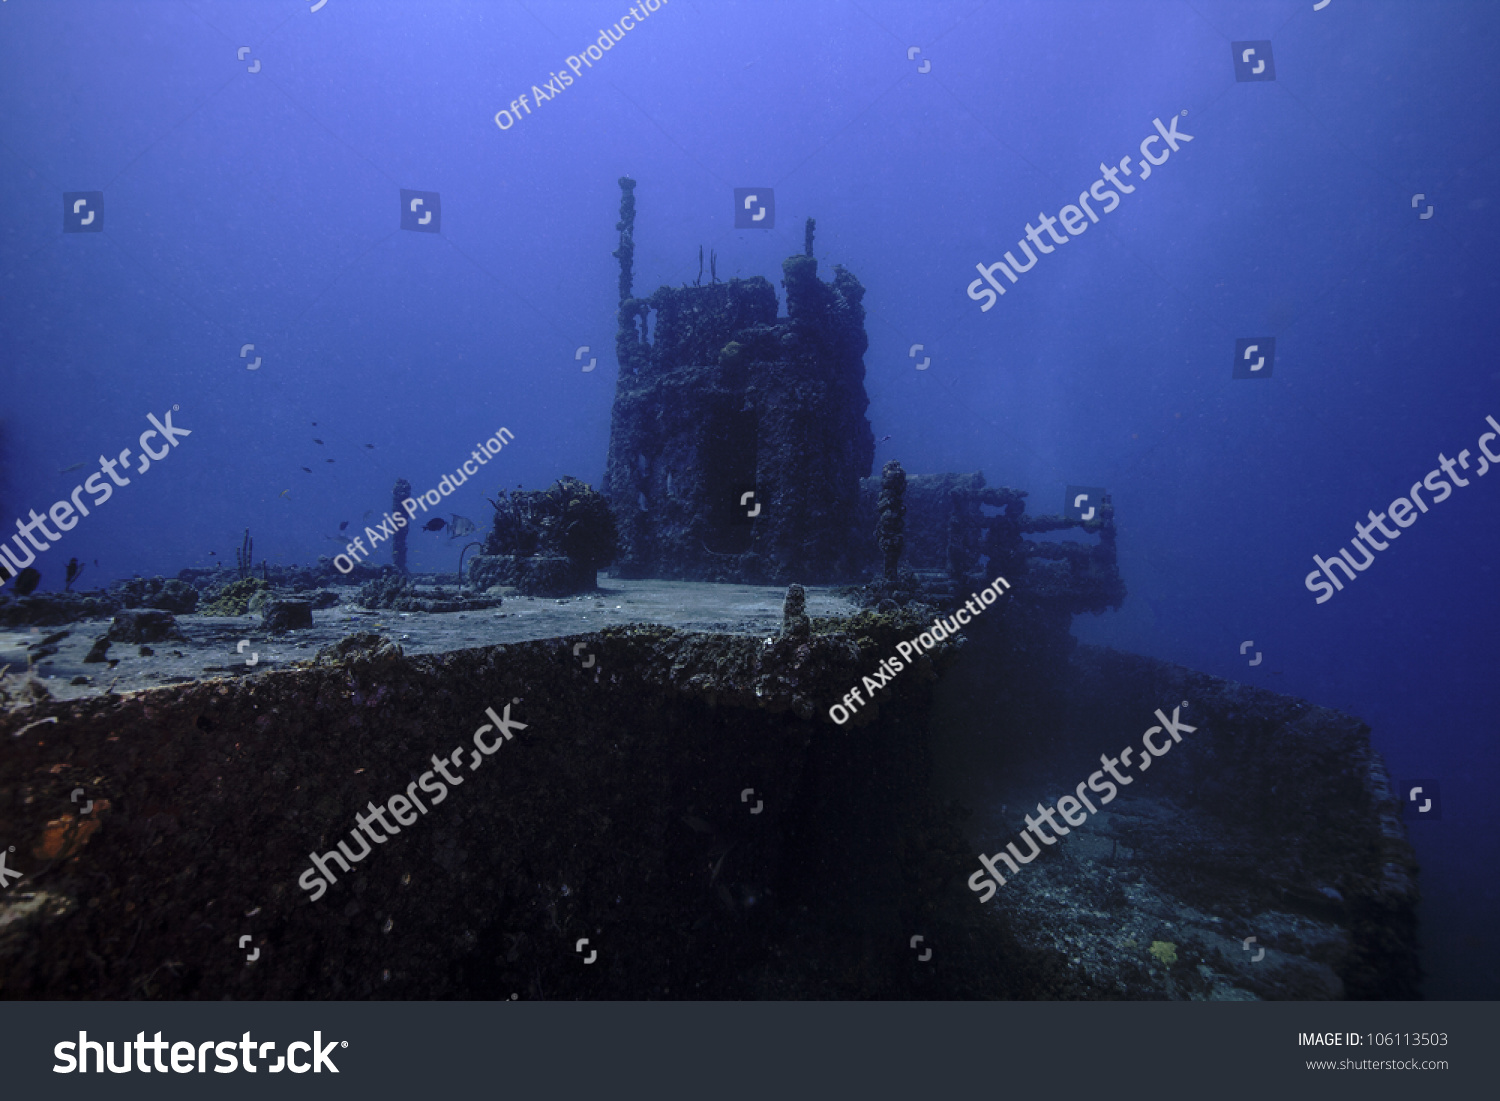 The USCG Duane in Key Largo, Florida. A sunken shipwreck in the John Pennekamp State park. A ship sunk intentionally as an artificial reef. #106113503